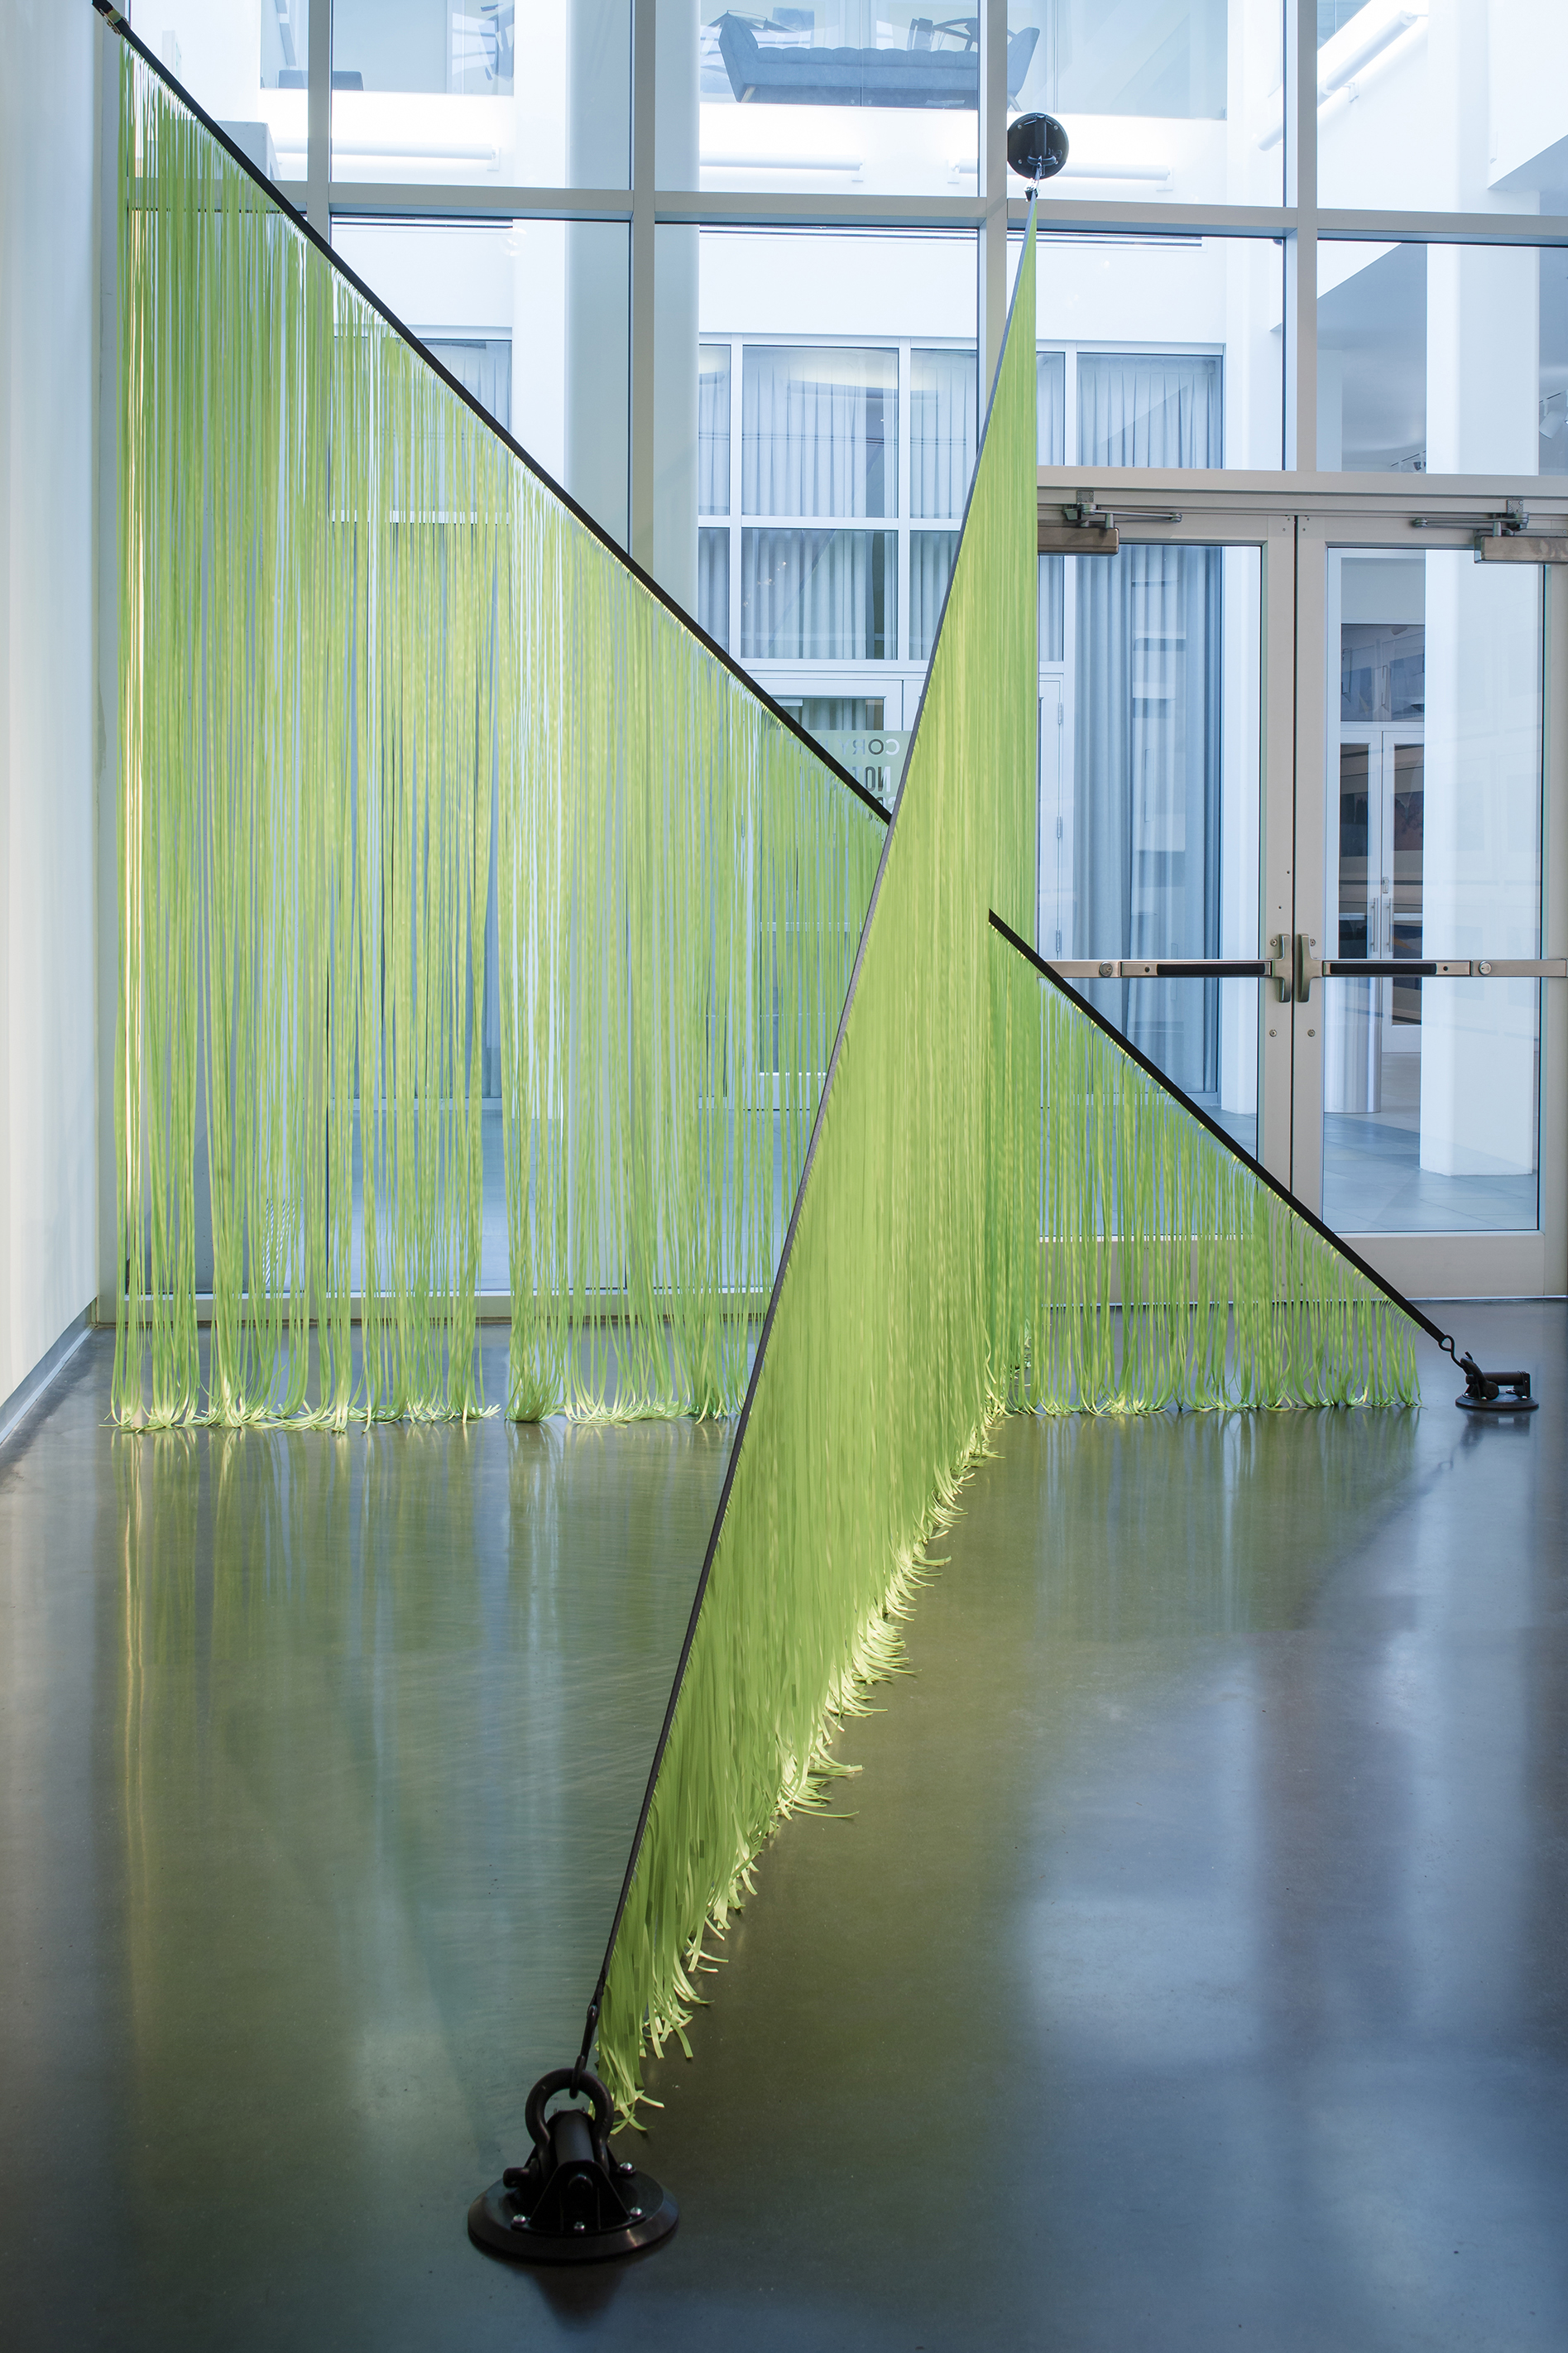 Notes on Sculpture , July 11 – November 5, 2017, SCAD Museum of Art. Curated by Amanda York, SCAD assistant curator. Images courtesy of Savannah College of Art and Design.